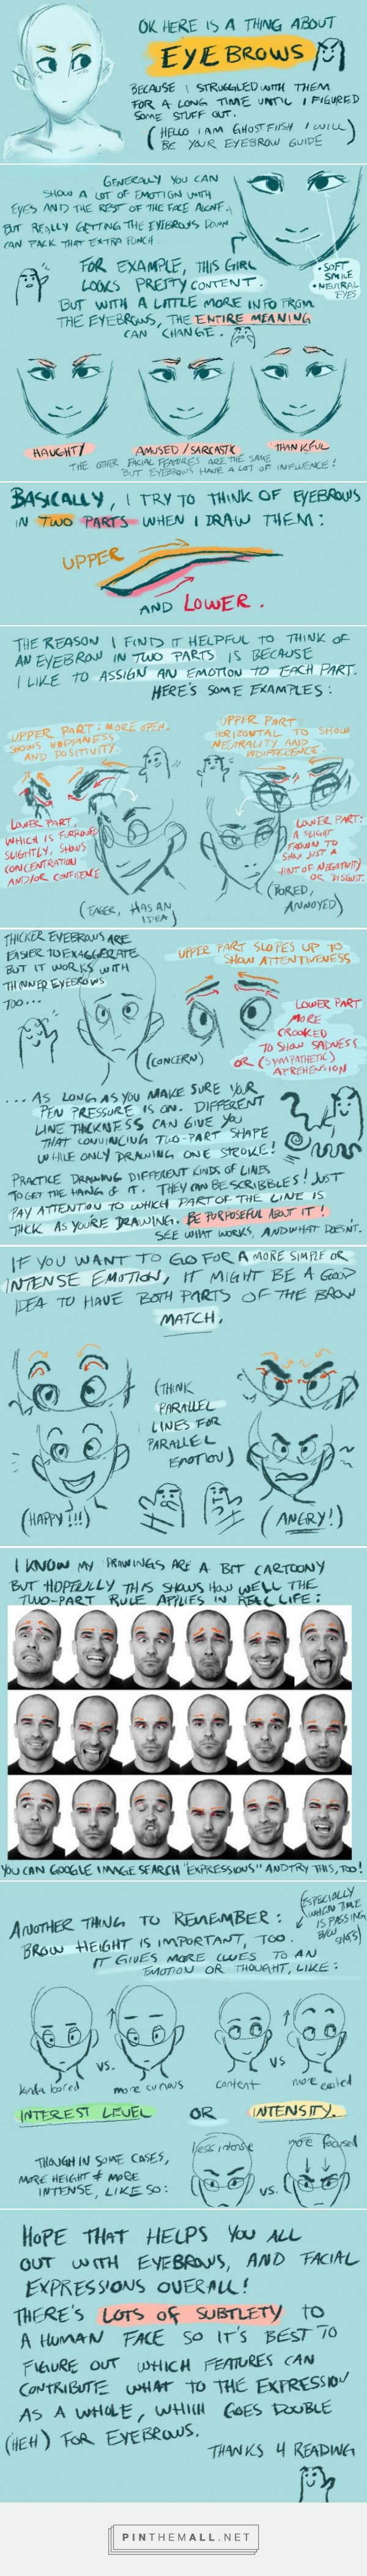 a tutorial for eyebrows!: http://ghostfiish.tumblr.com/post/62406002826/i-made-a-tutorial-for-eyebrows-as-i-was-doodling